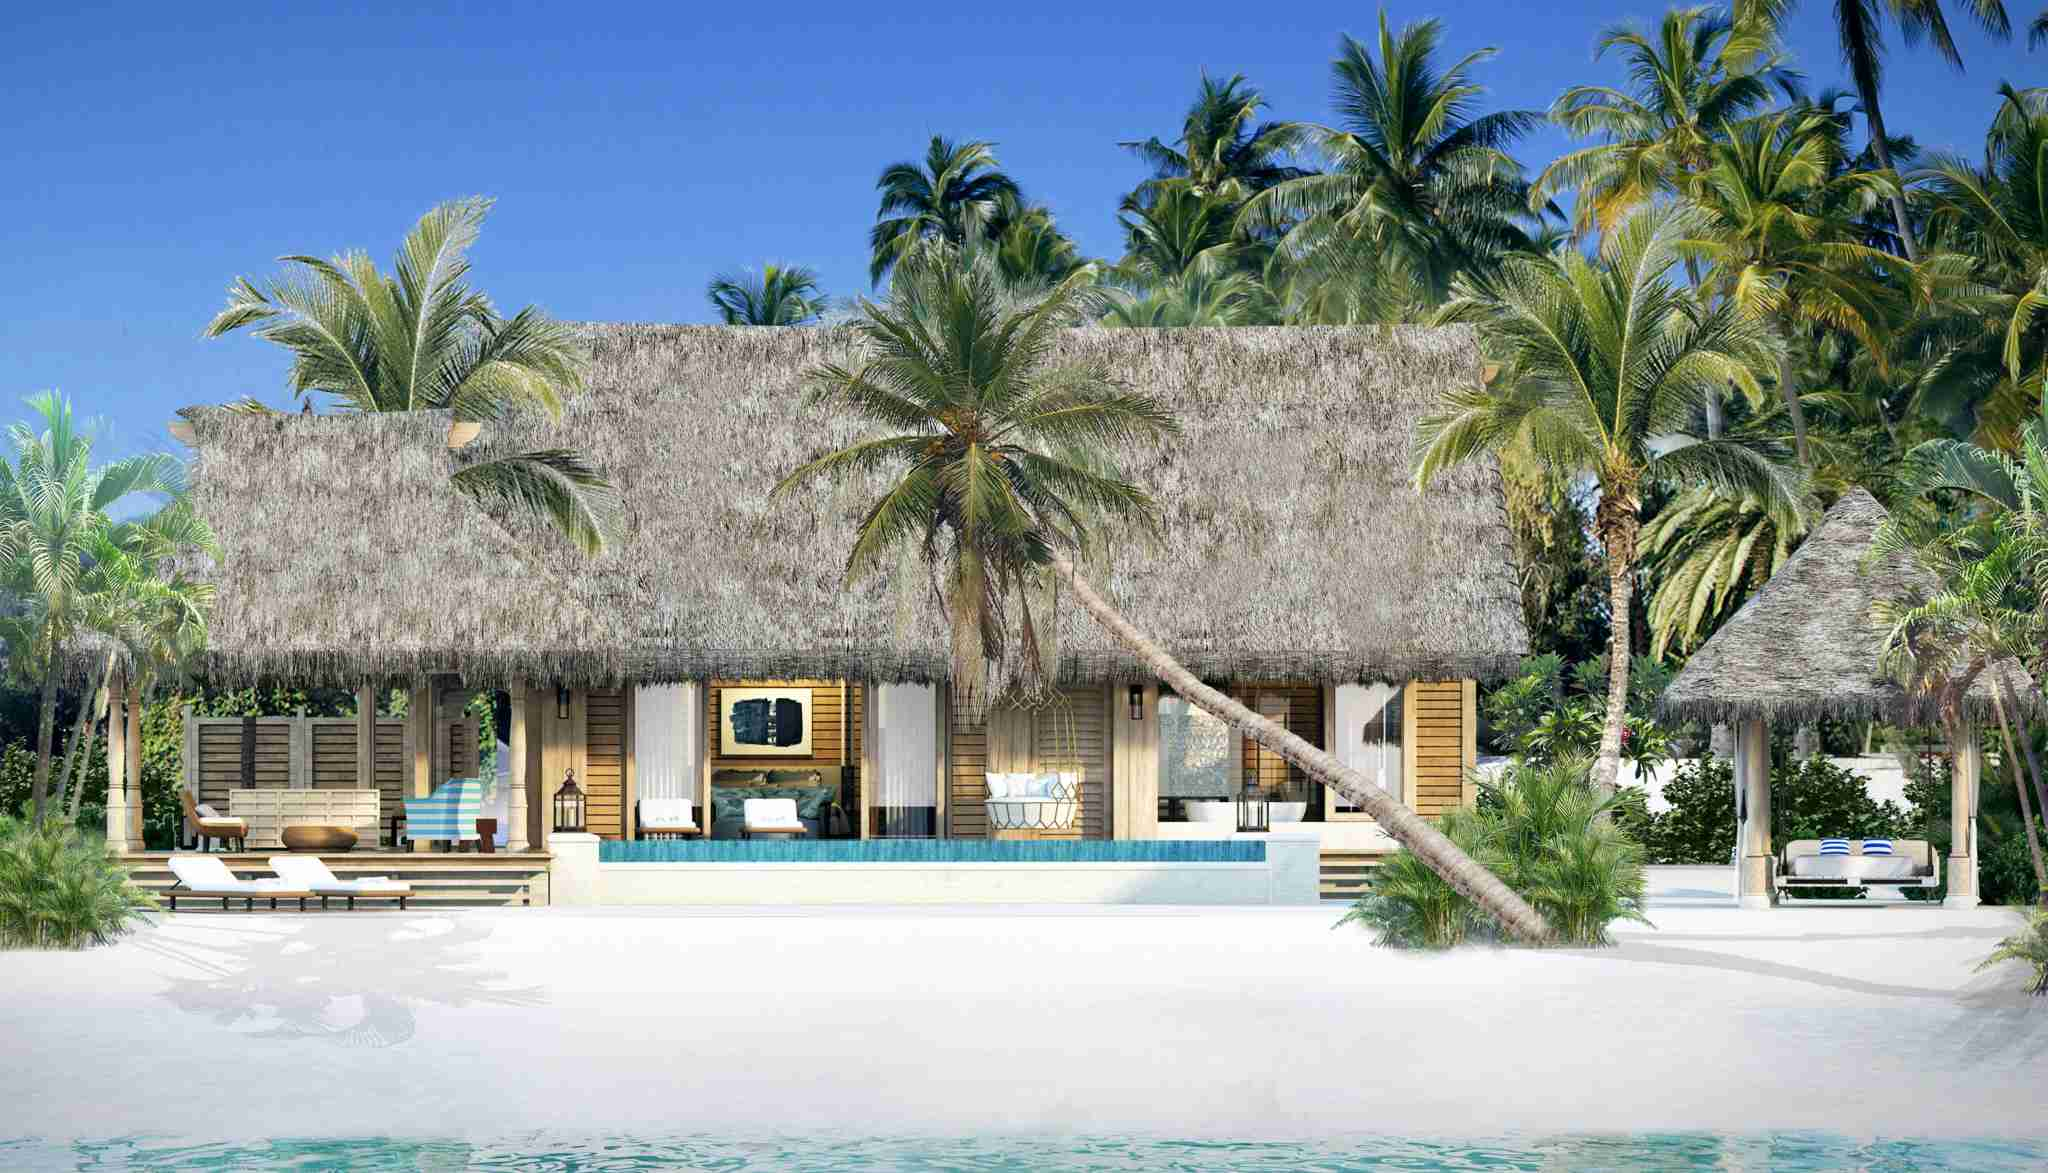 Beach Villa with Pool. Image by HIlton